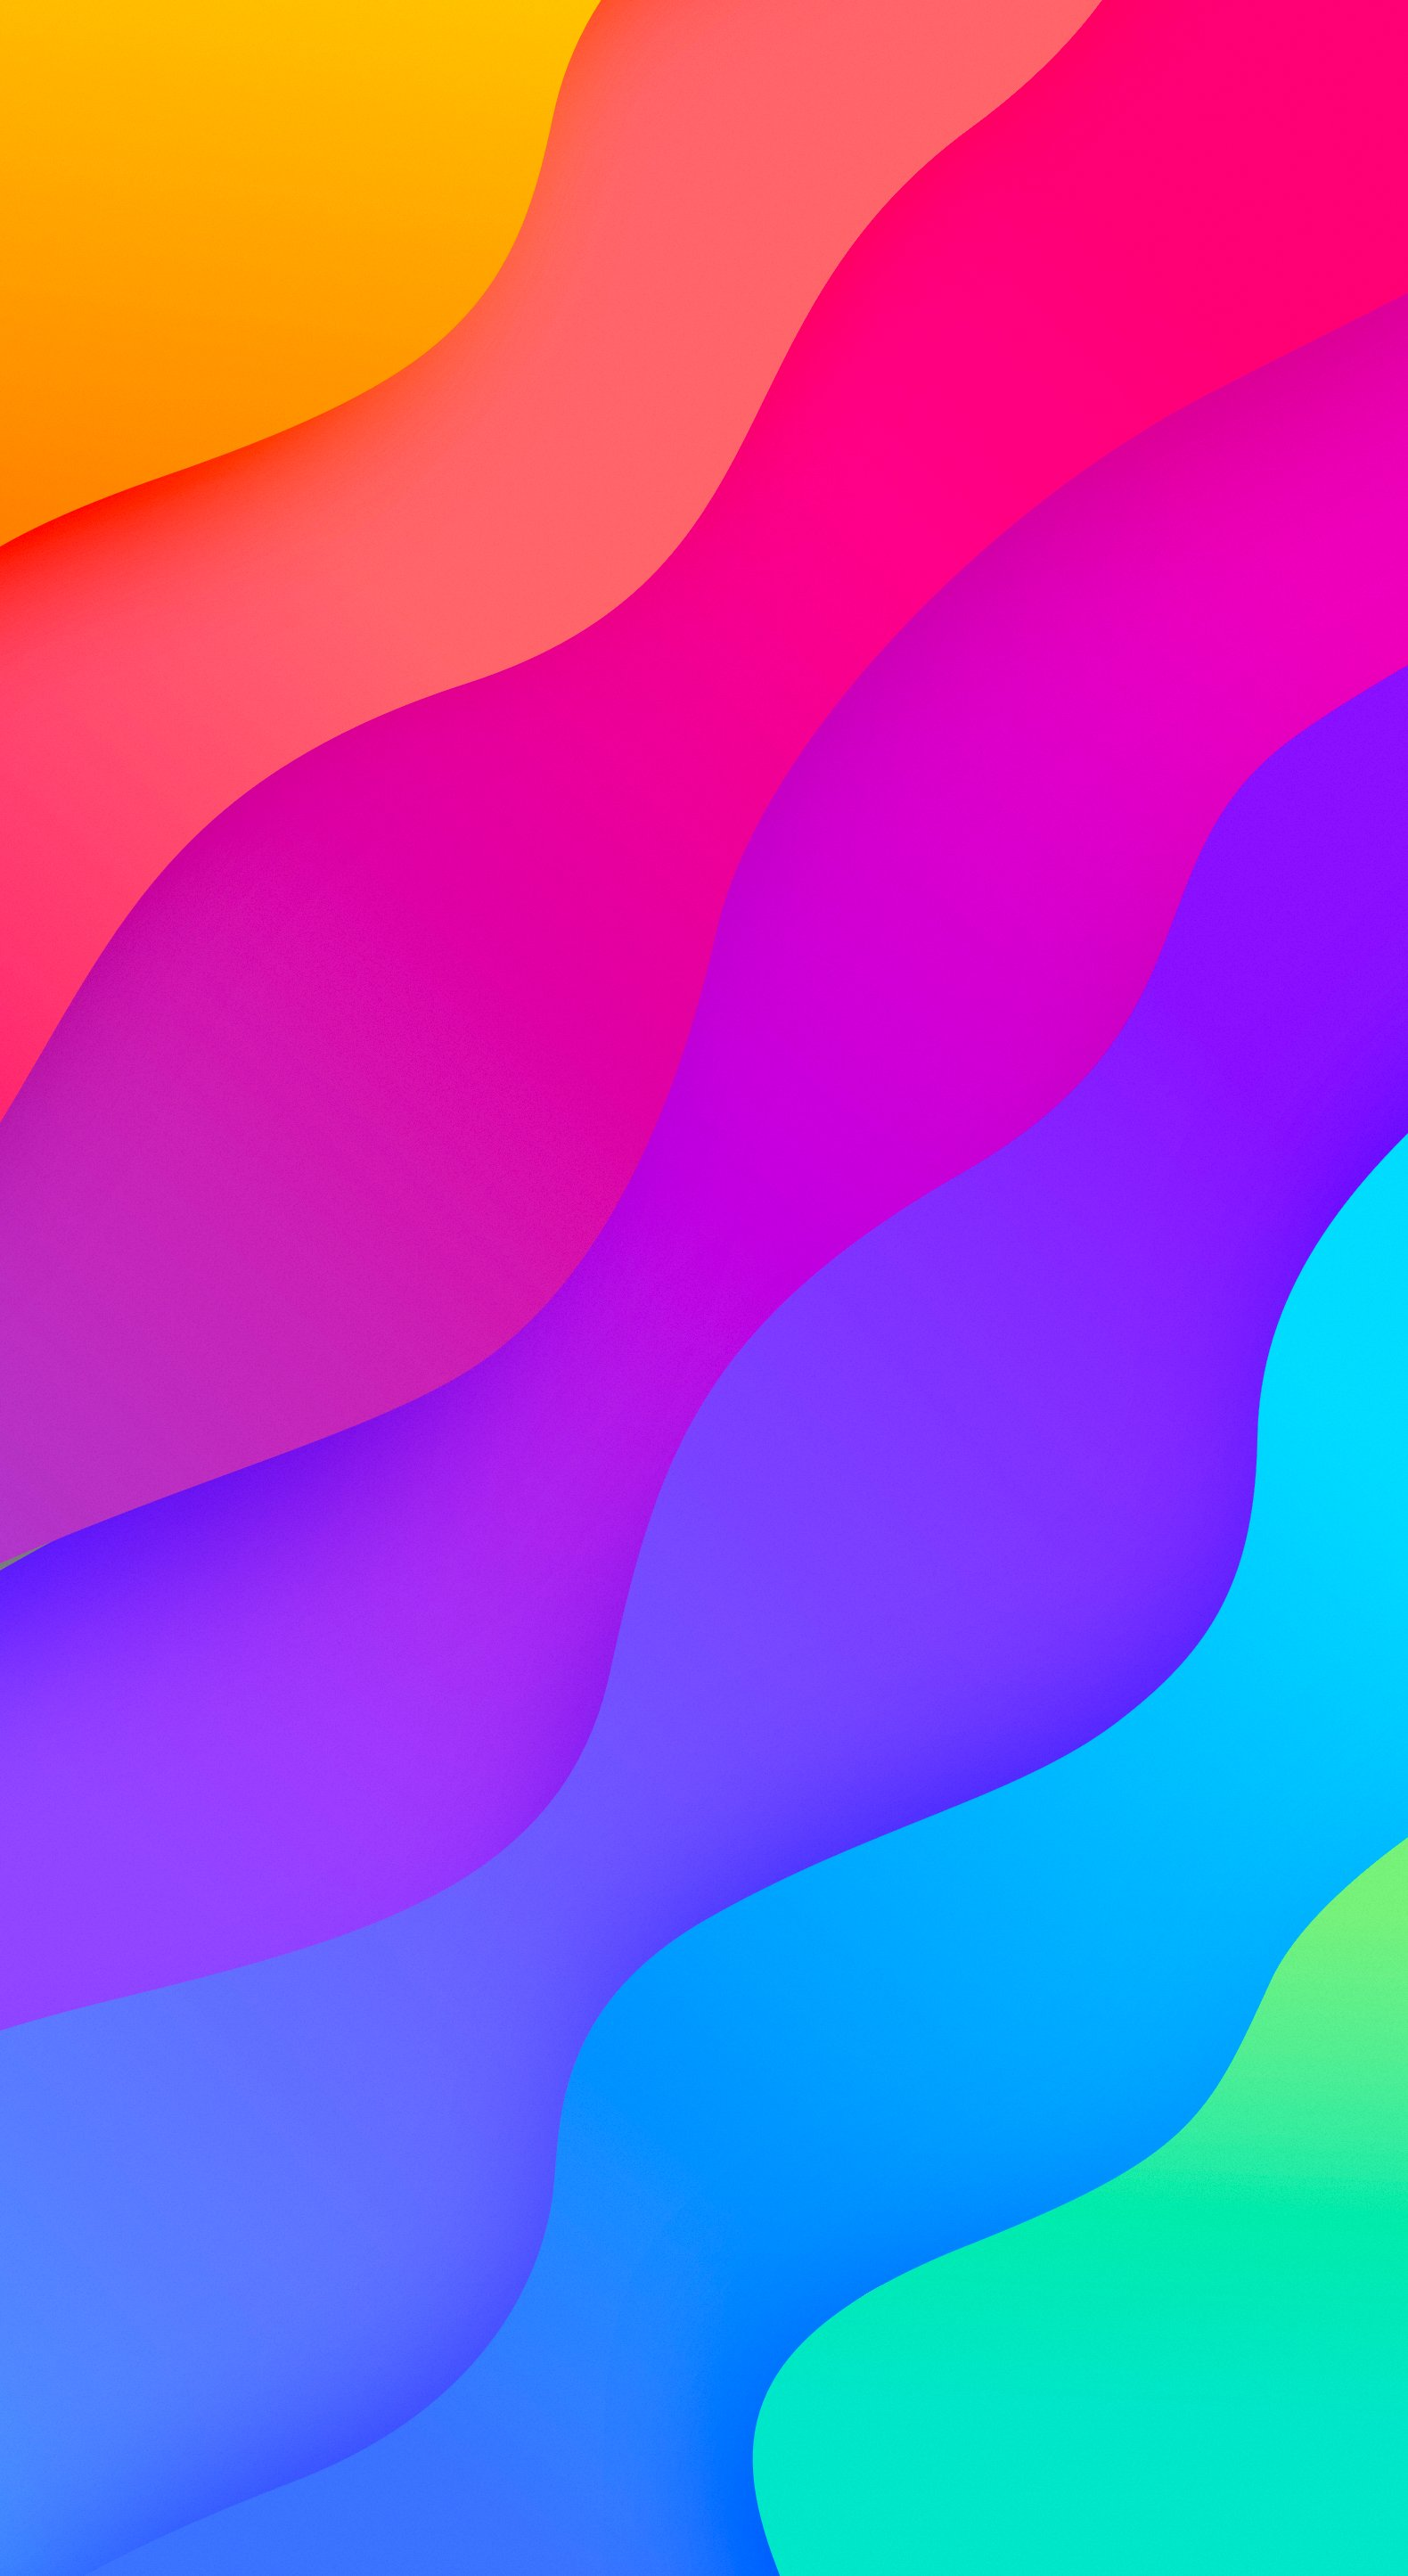 Wavy A set of vibrant wallpapers 1580x2890